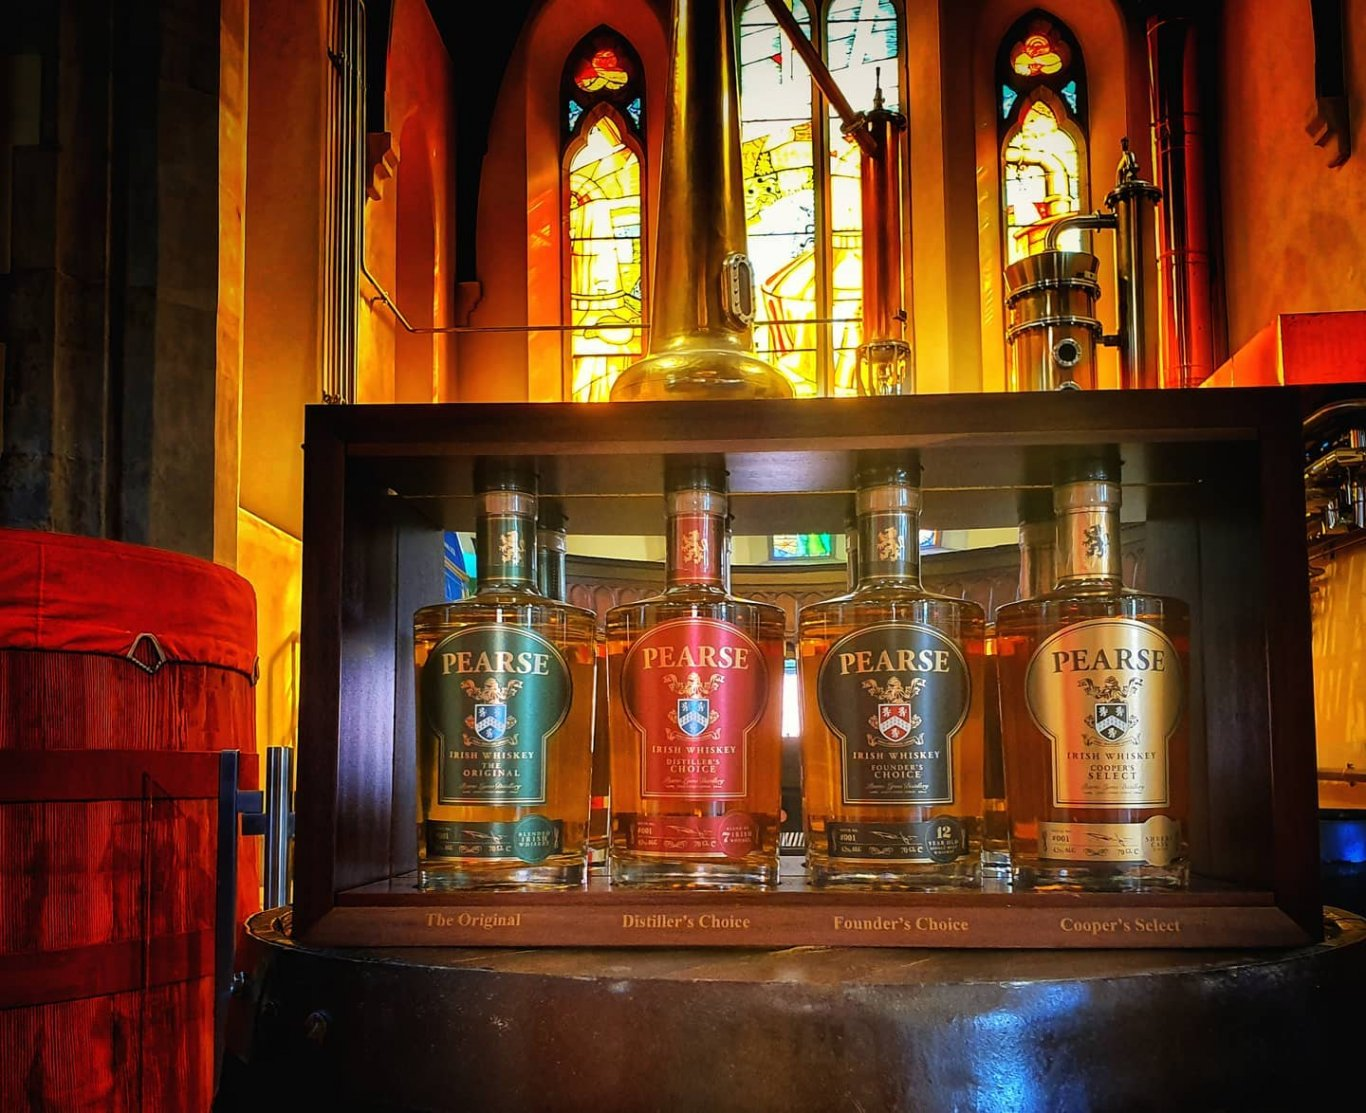 Four bottles of Pearse Lyons Irish Whiskey on whiskey barrel in Pearse Lyons Distillery